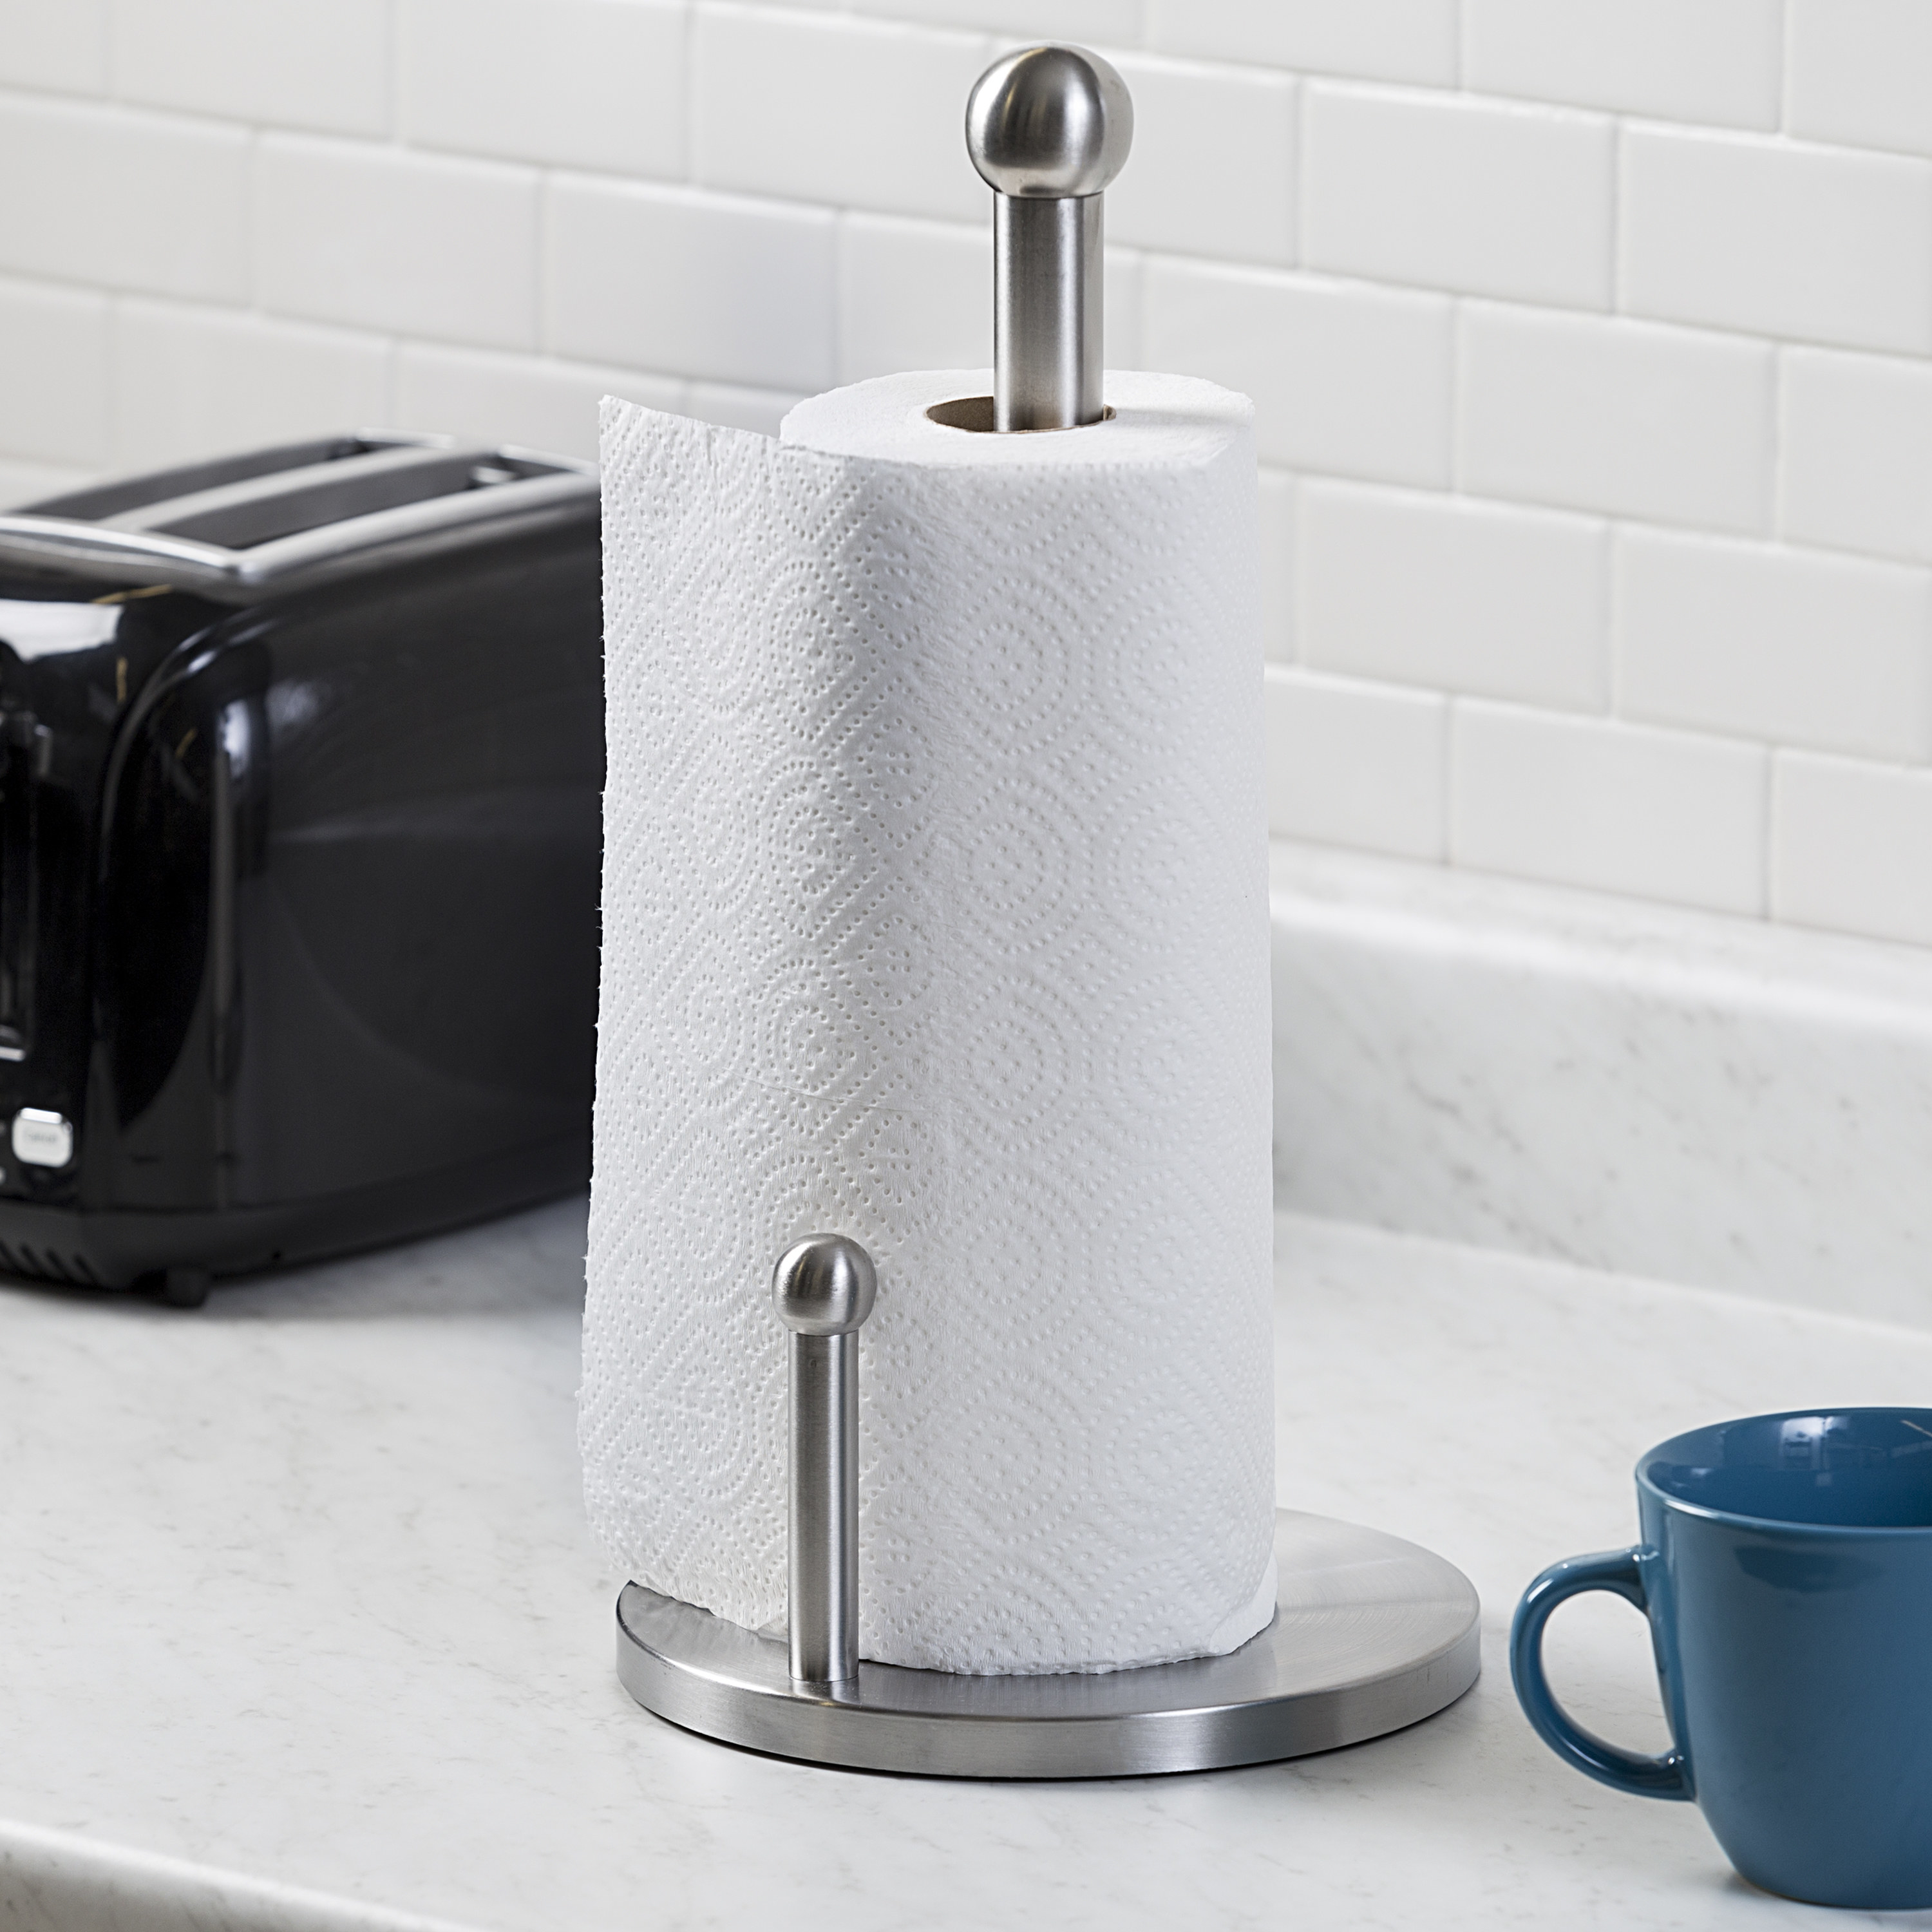 A silver paper towel holder in a home.